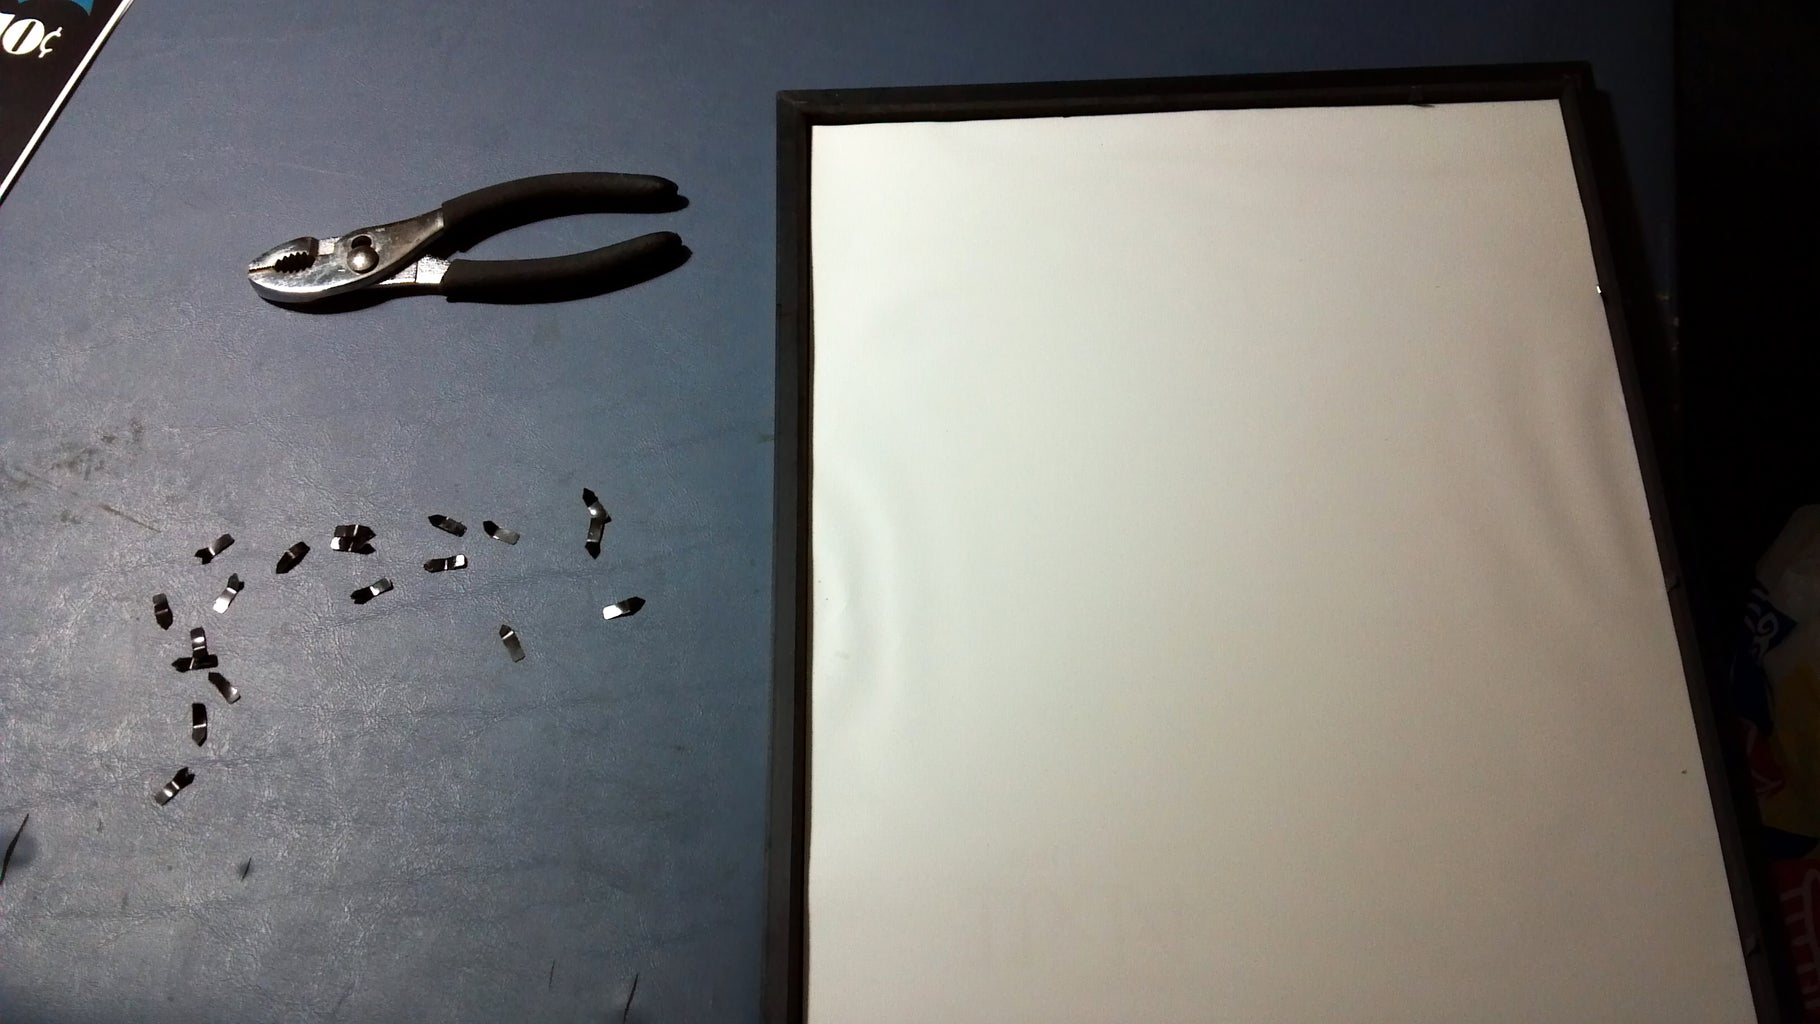 Picture Frames - Disassemble!